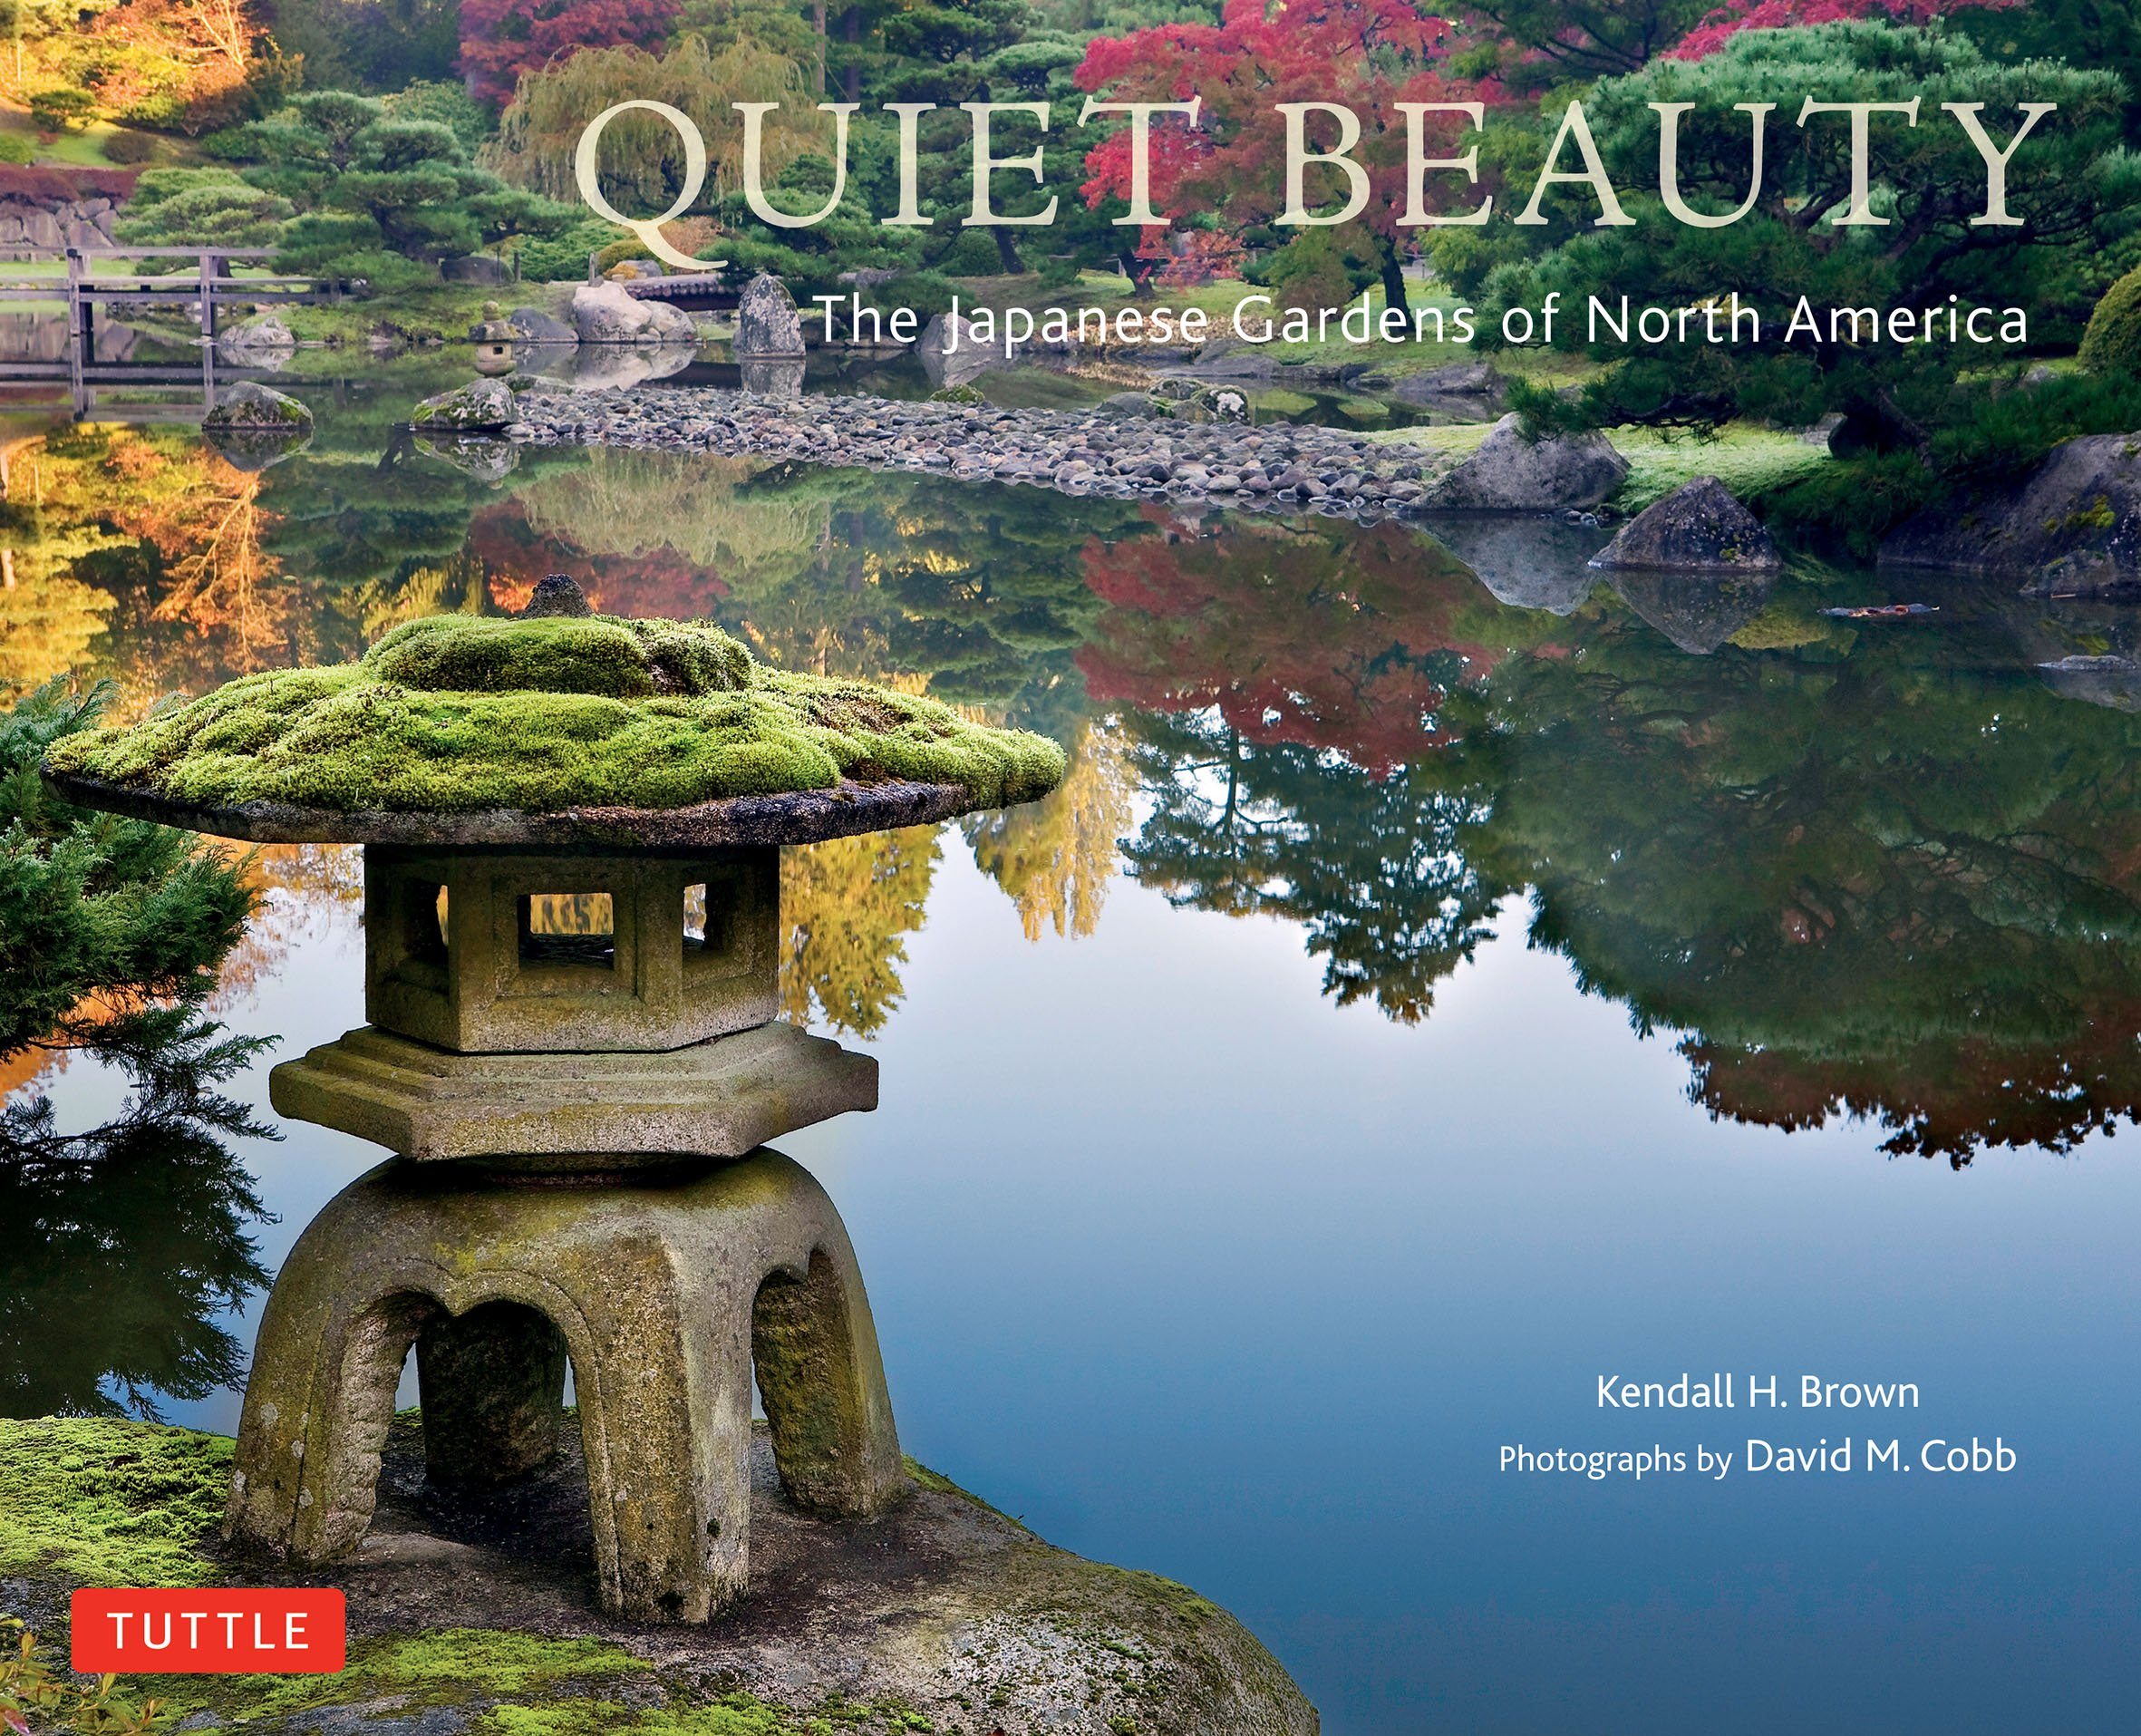 Amazon.com: Quiet Beauty: The Japanese Gardens Of North America  (9784805311950): Kendall H. Brown, David M. Cobb: Books